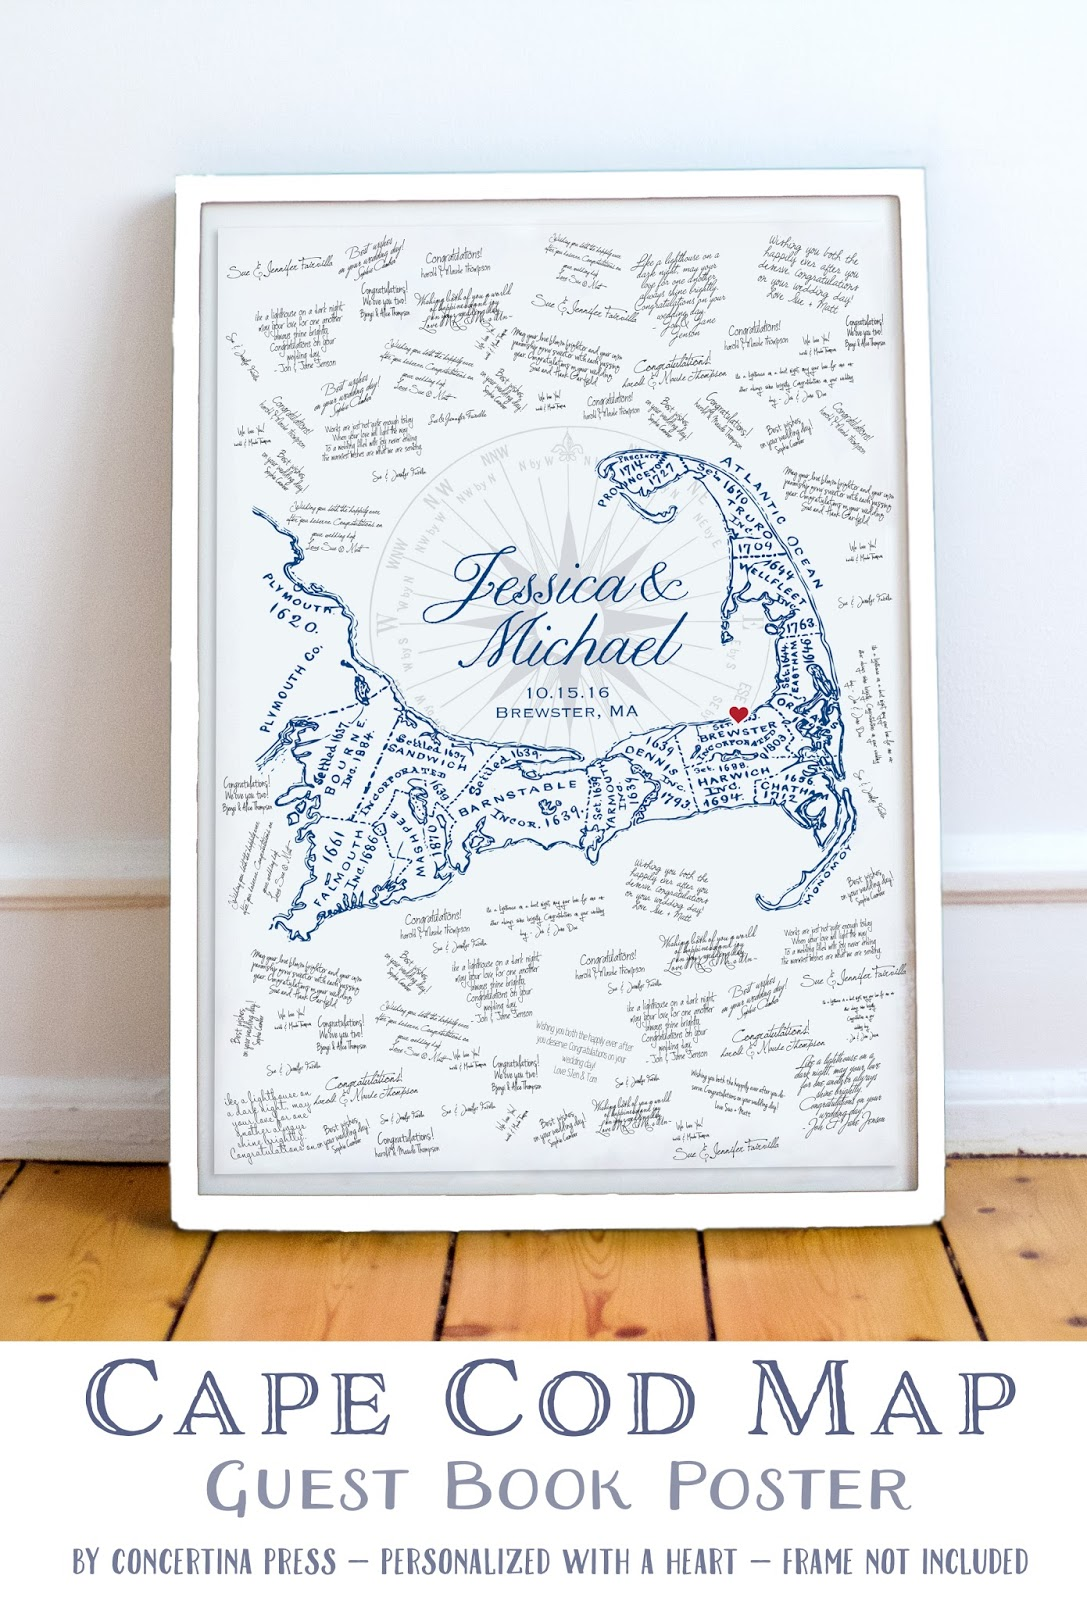 Alternative Cape Cod Guest Book Poster from Concertina Press